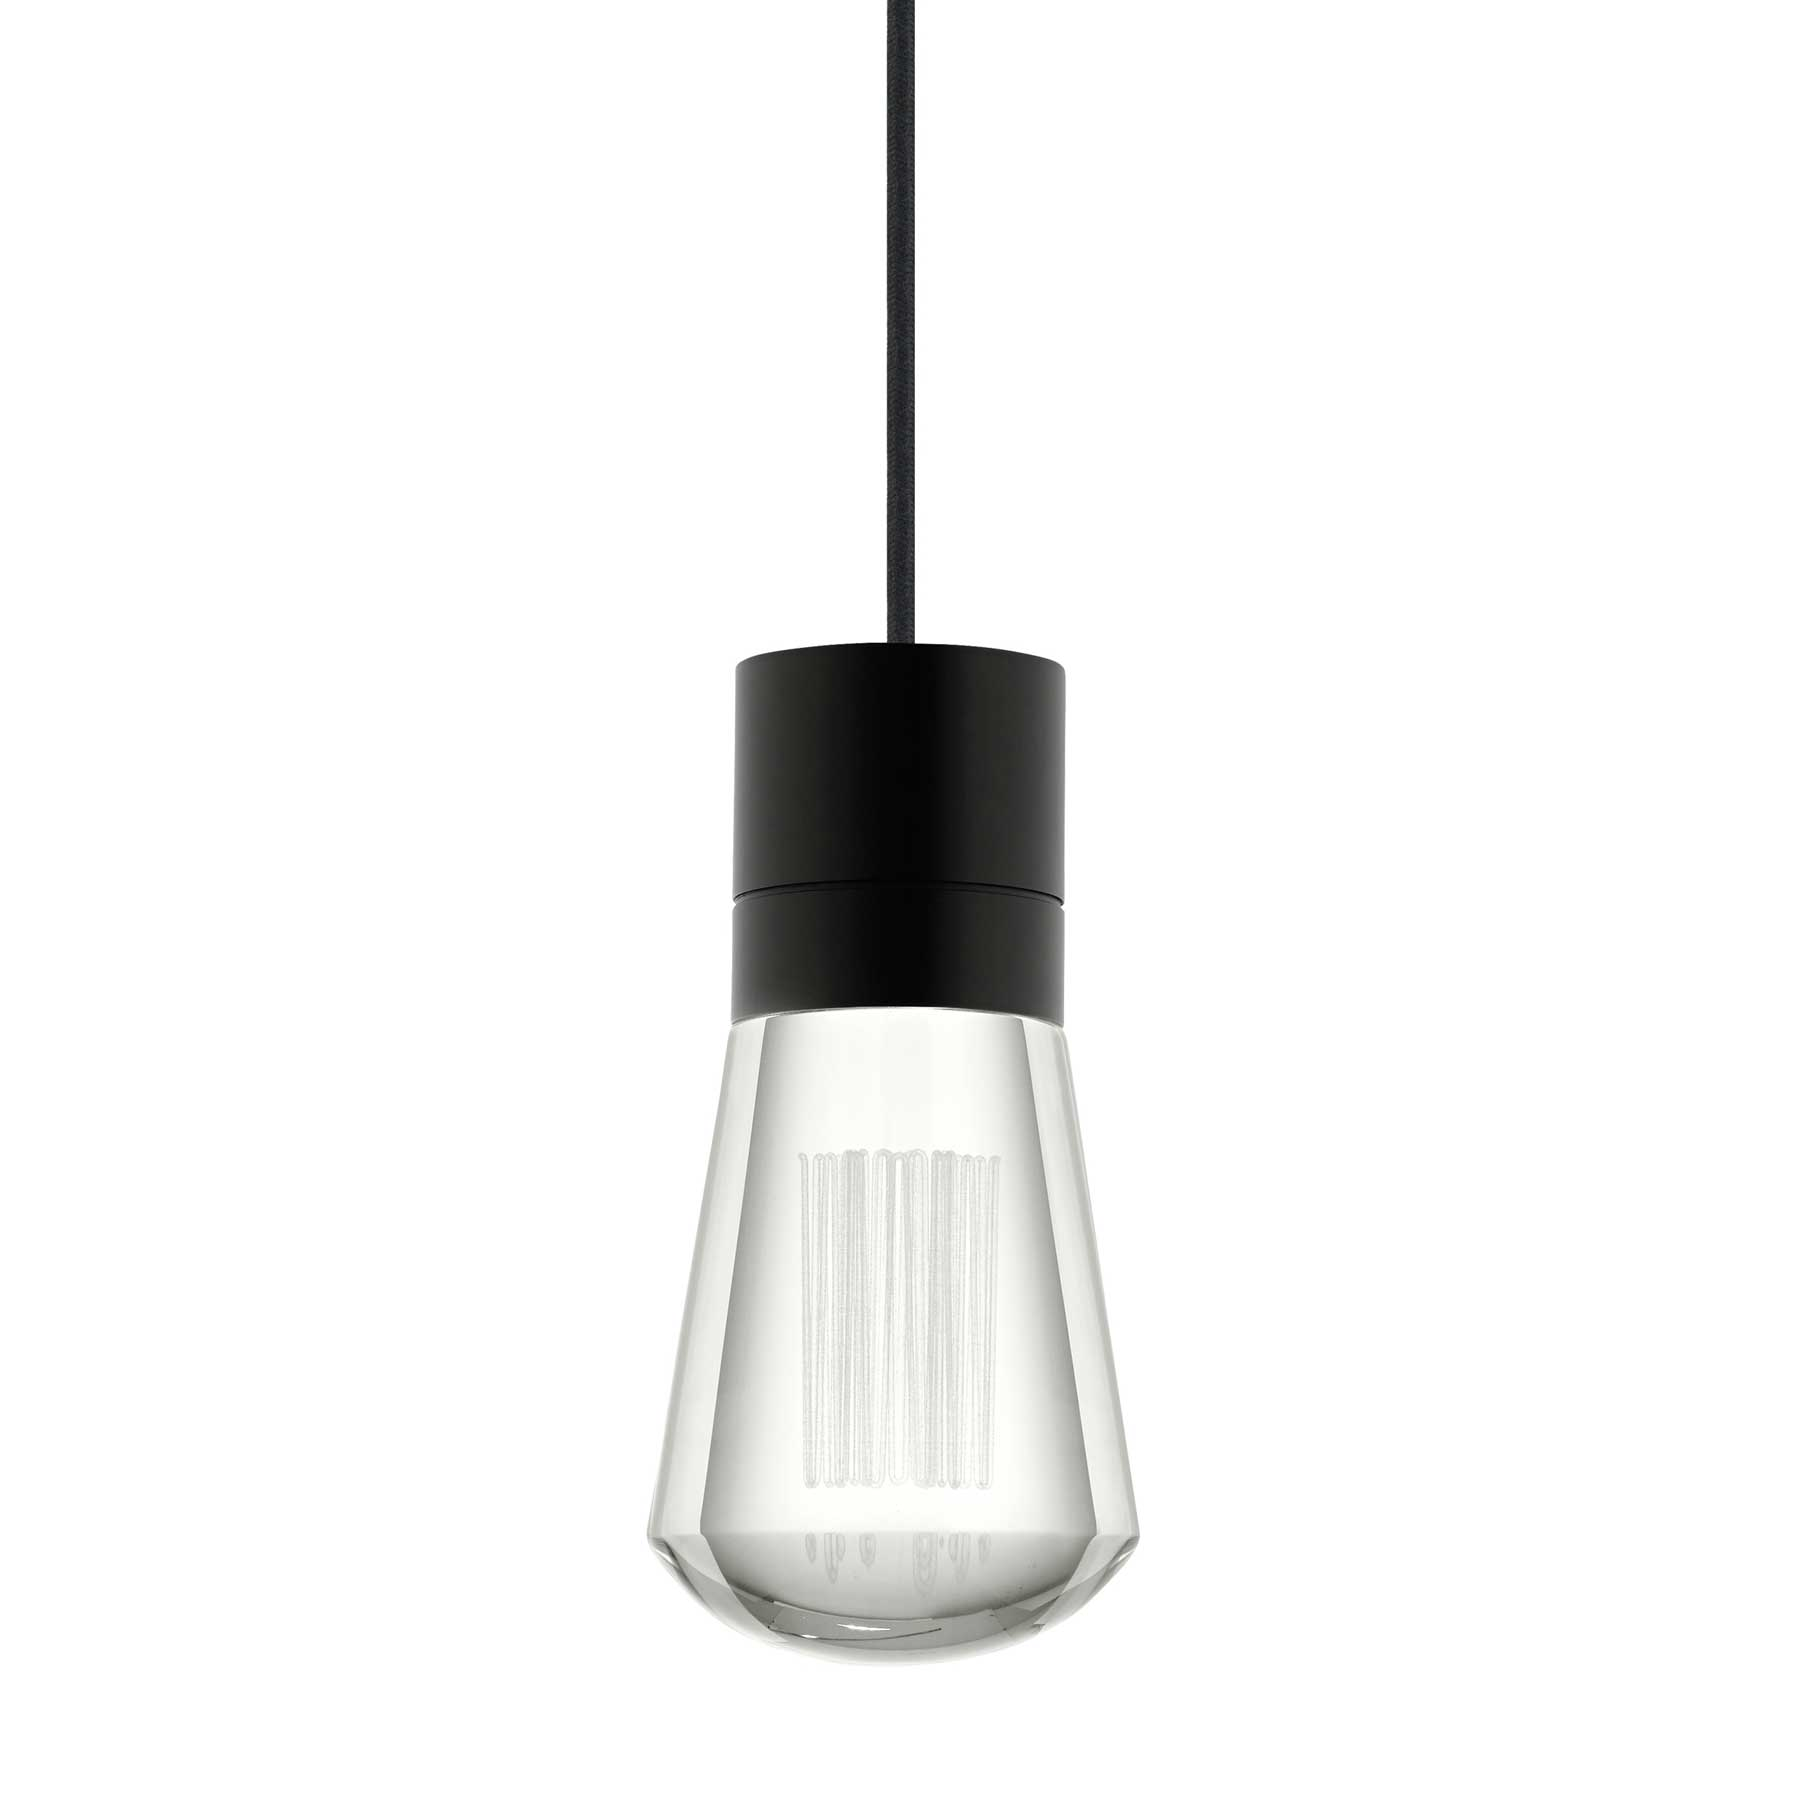 boost hebbe black wood voor lamp ink crowdyhouse on recht pendant zwart kikke shop